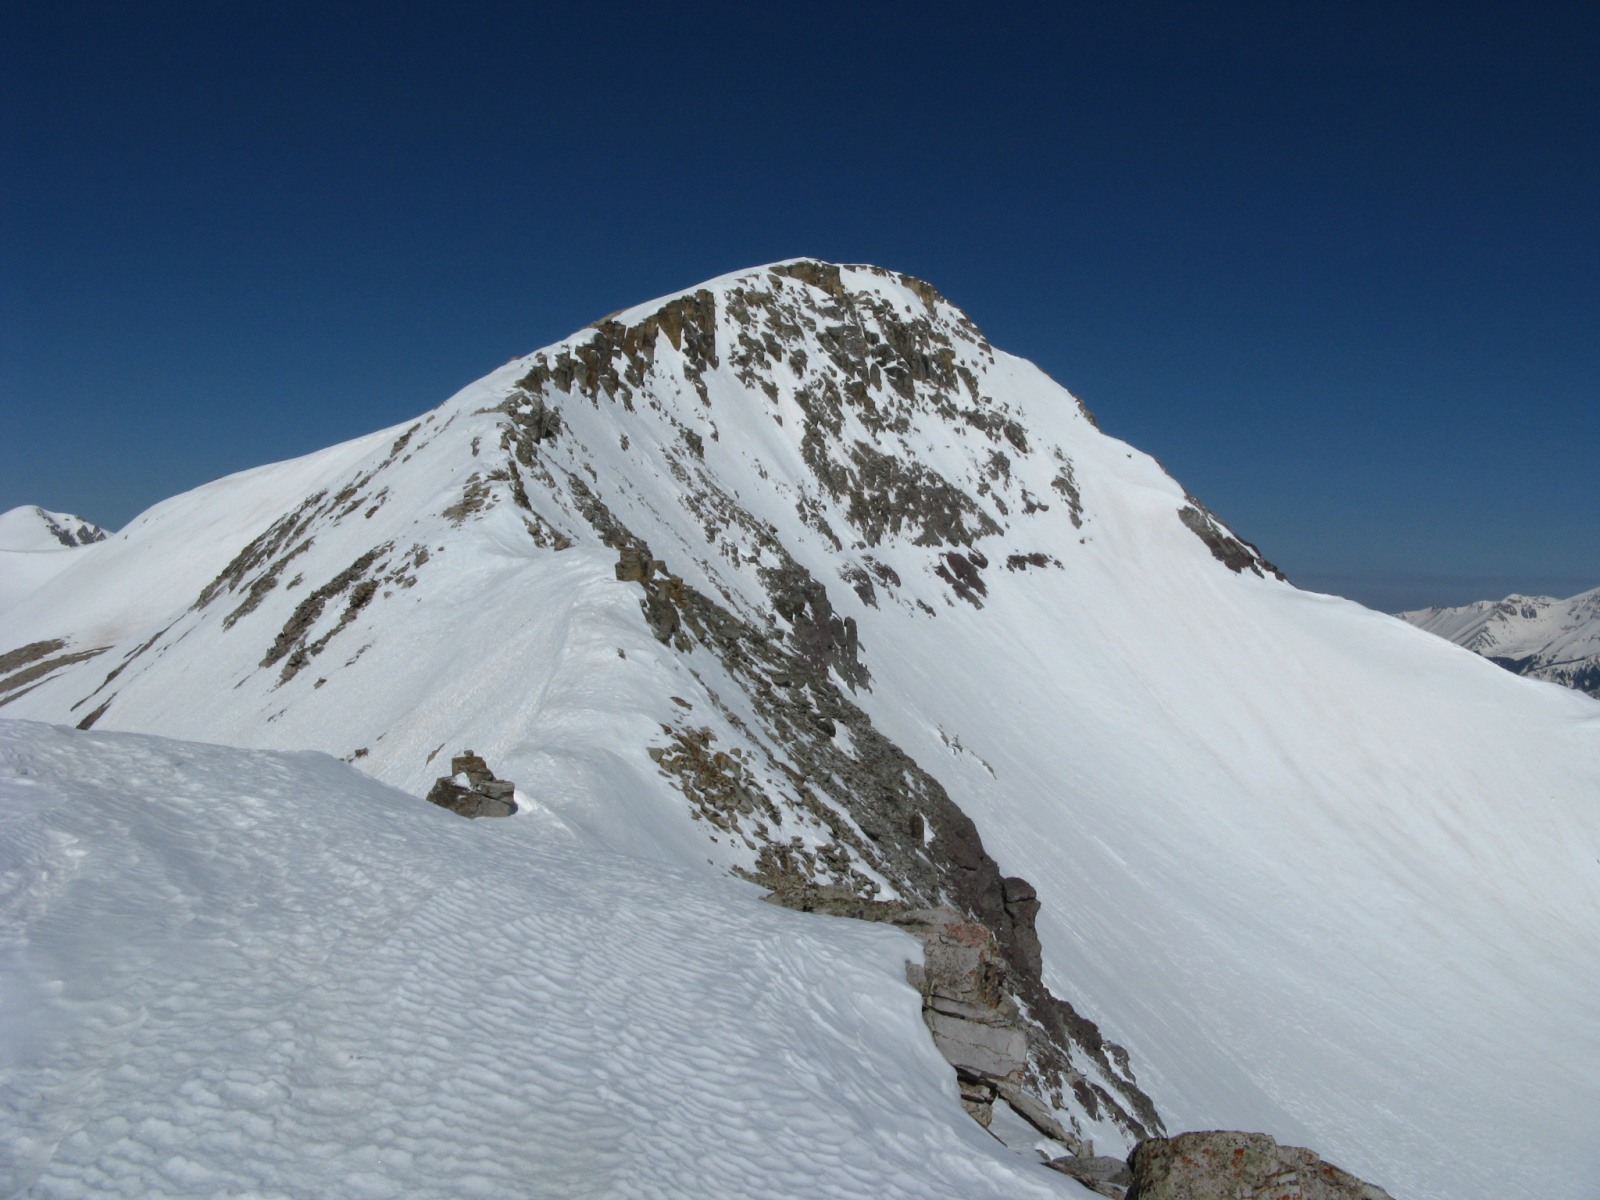 Trico Peak from its own east ridge